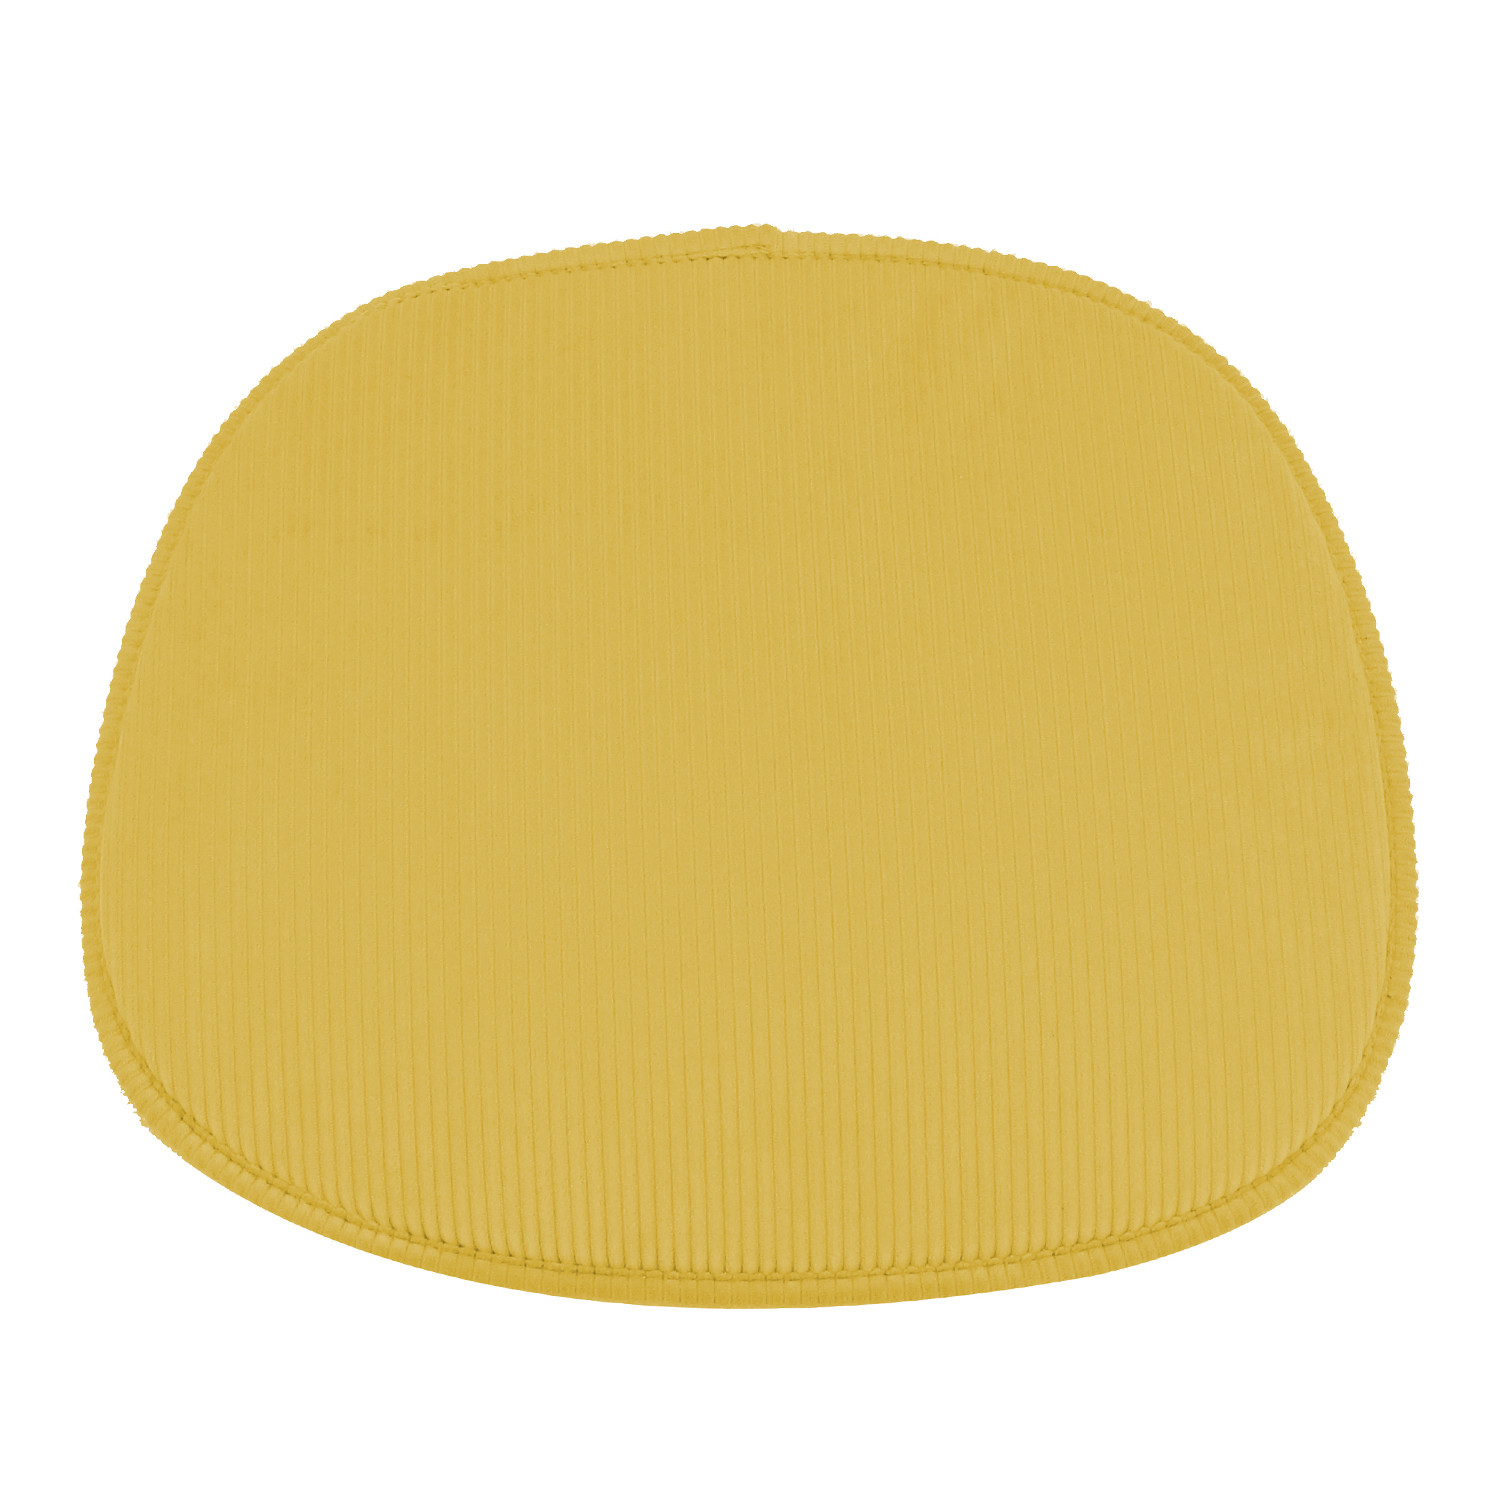 Brich Scand Chair Cushion in Corduroy, gallery image 1